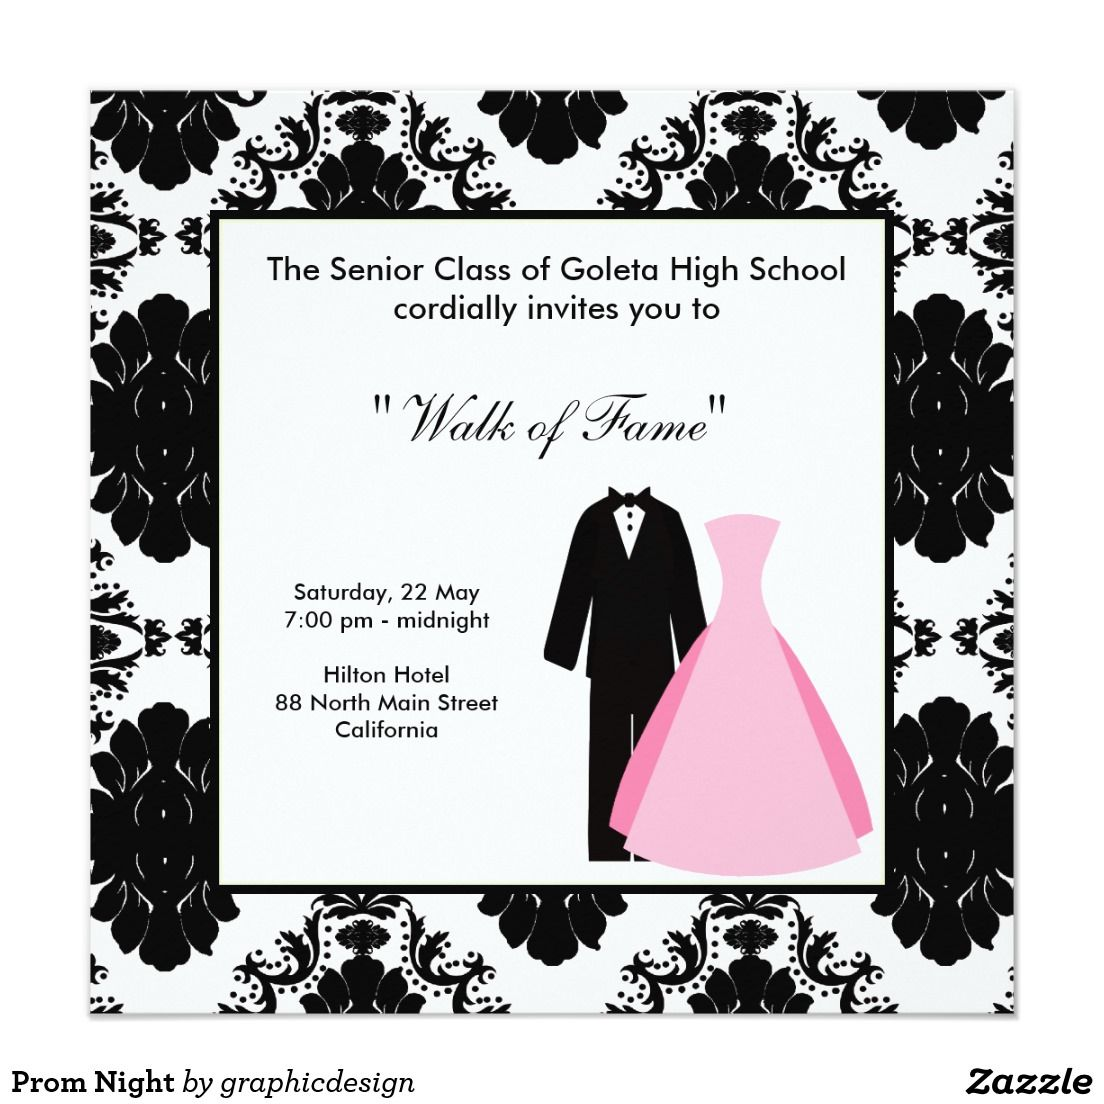 Prom night 525x525 square paper invitation card abschlussklasse prom night 525x525 square paper invitation card stopboris Image collections